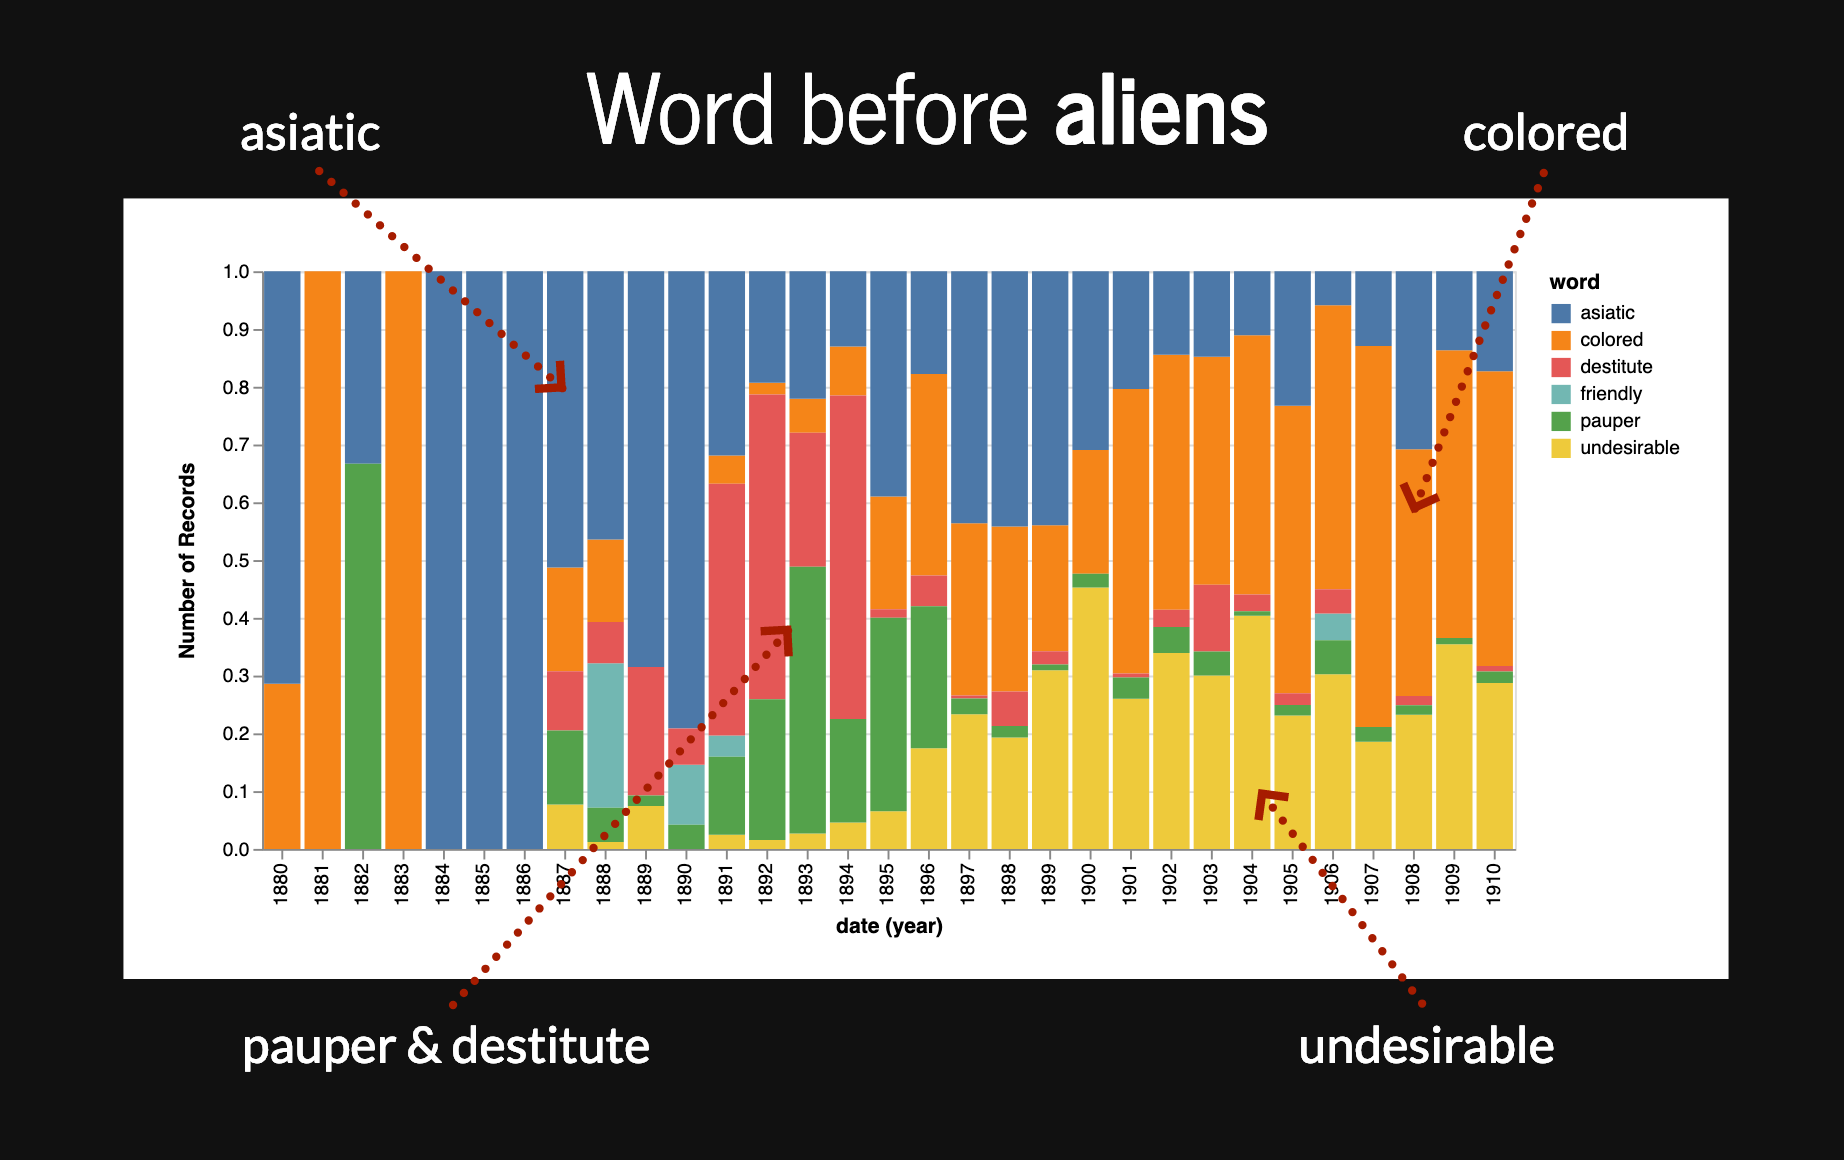 Words appearing before aliens plotted by date and proportion